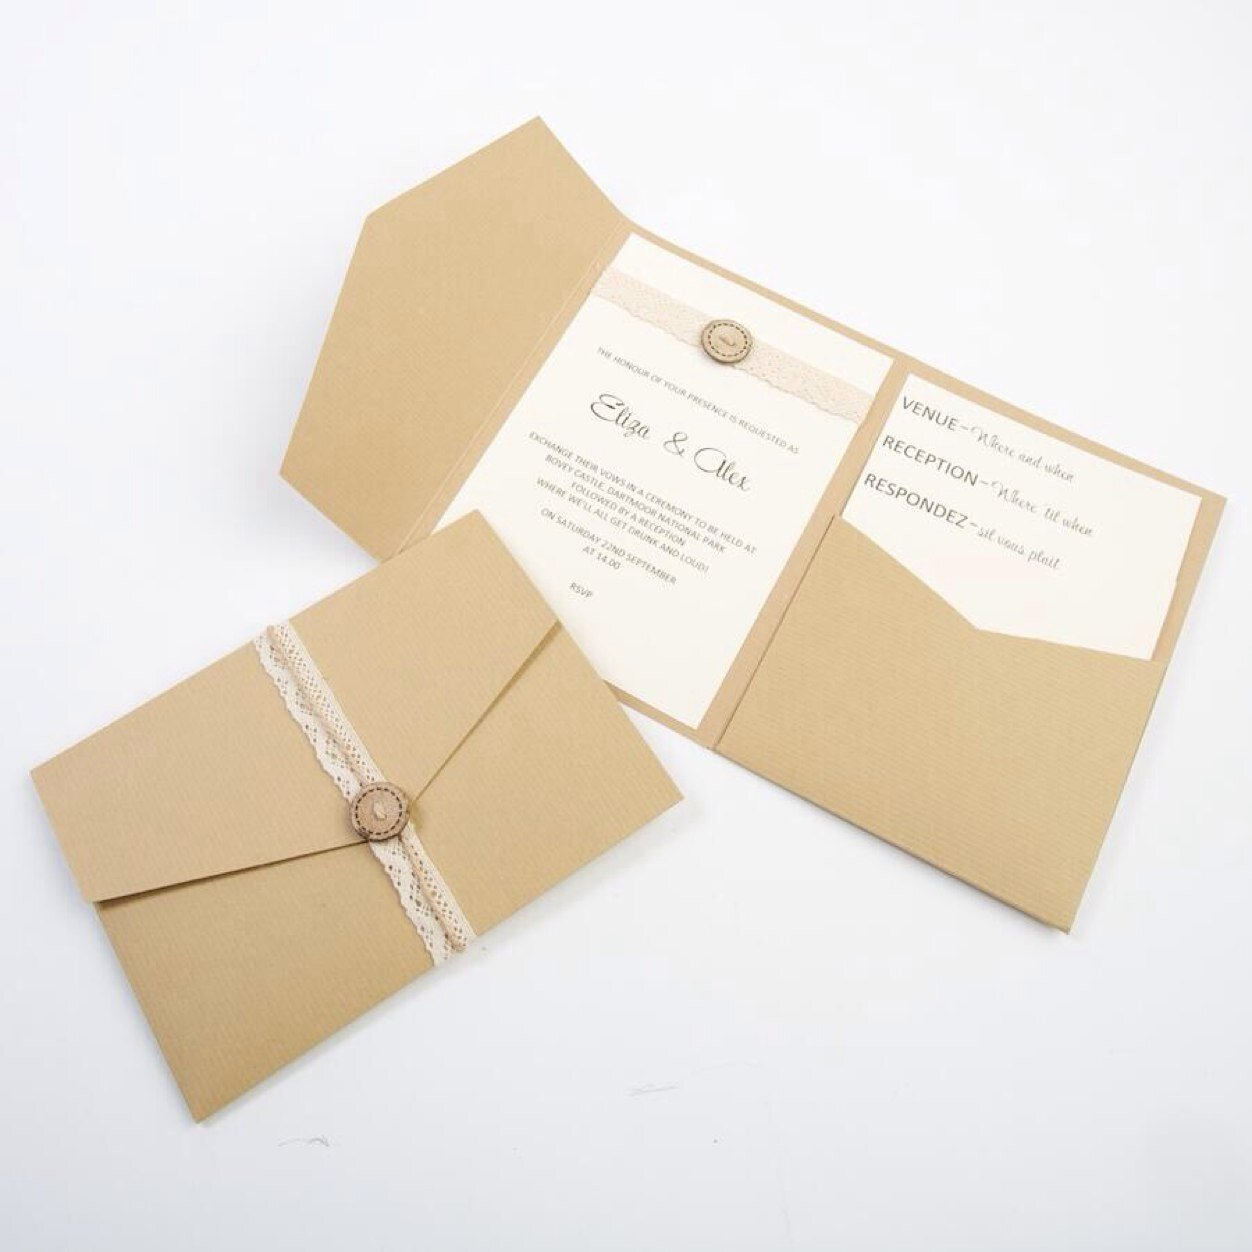 Pocketfold Invites On Twitter Diy Wedding Invites Delivered